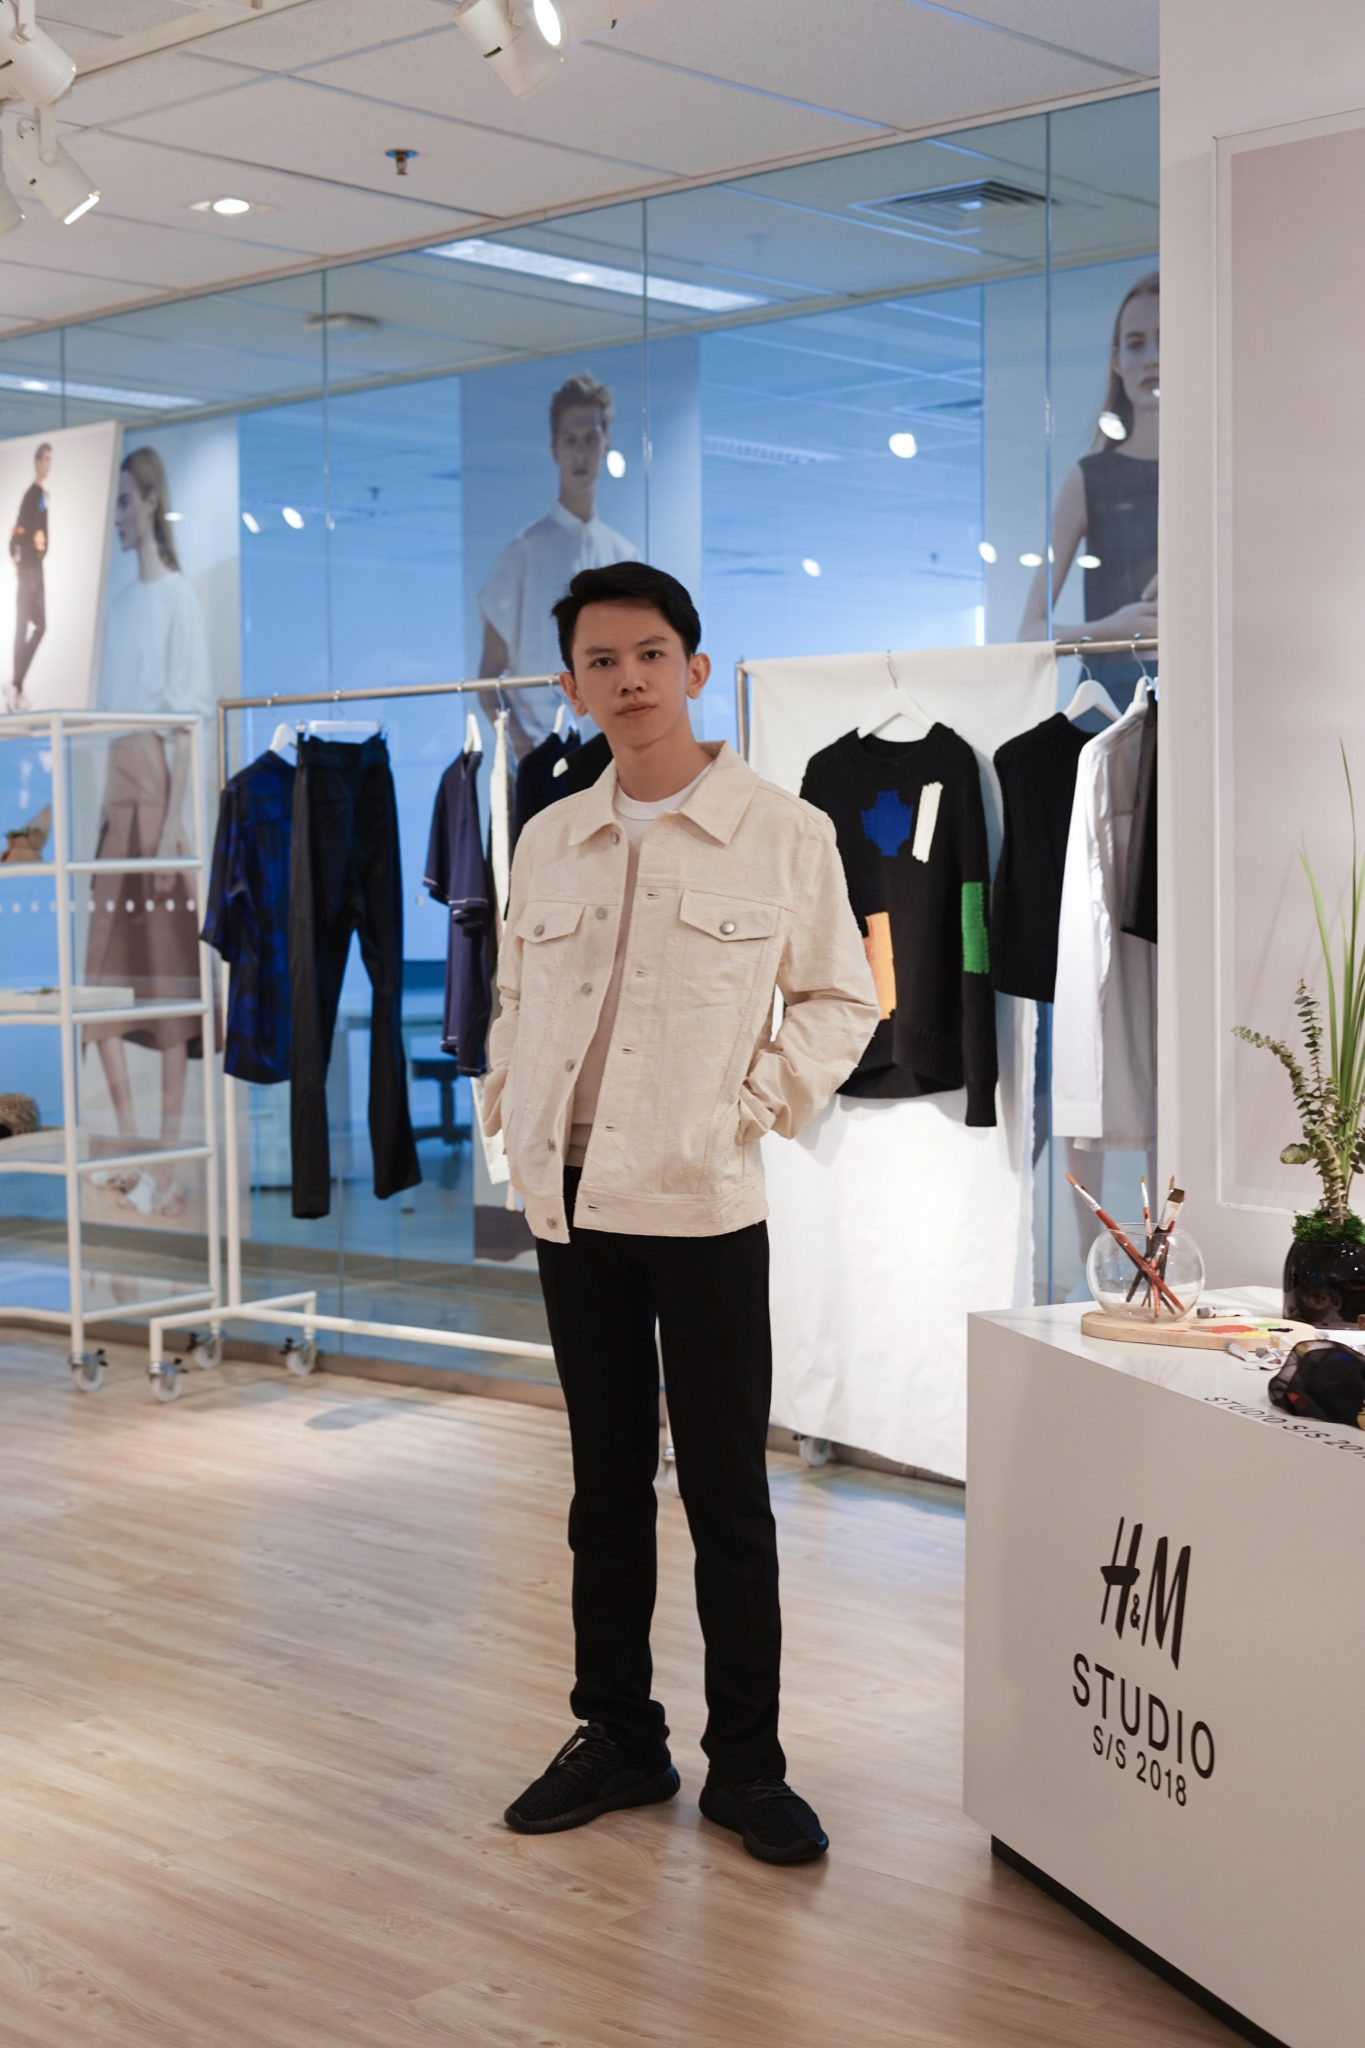 hendrawithjaya hendrawithjaya.com Hendra wijaya h&m studio ss 2018 hm hnm hm indonesia spring summer 2018 fashion paris fashion week fashion blogger style influencer indonesia cowok instagram endorsement buzzer content creator japanese inspired jumper collection blogger pria indonesia